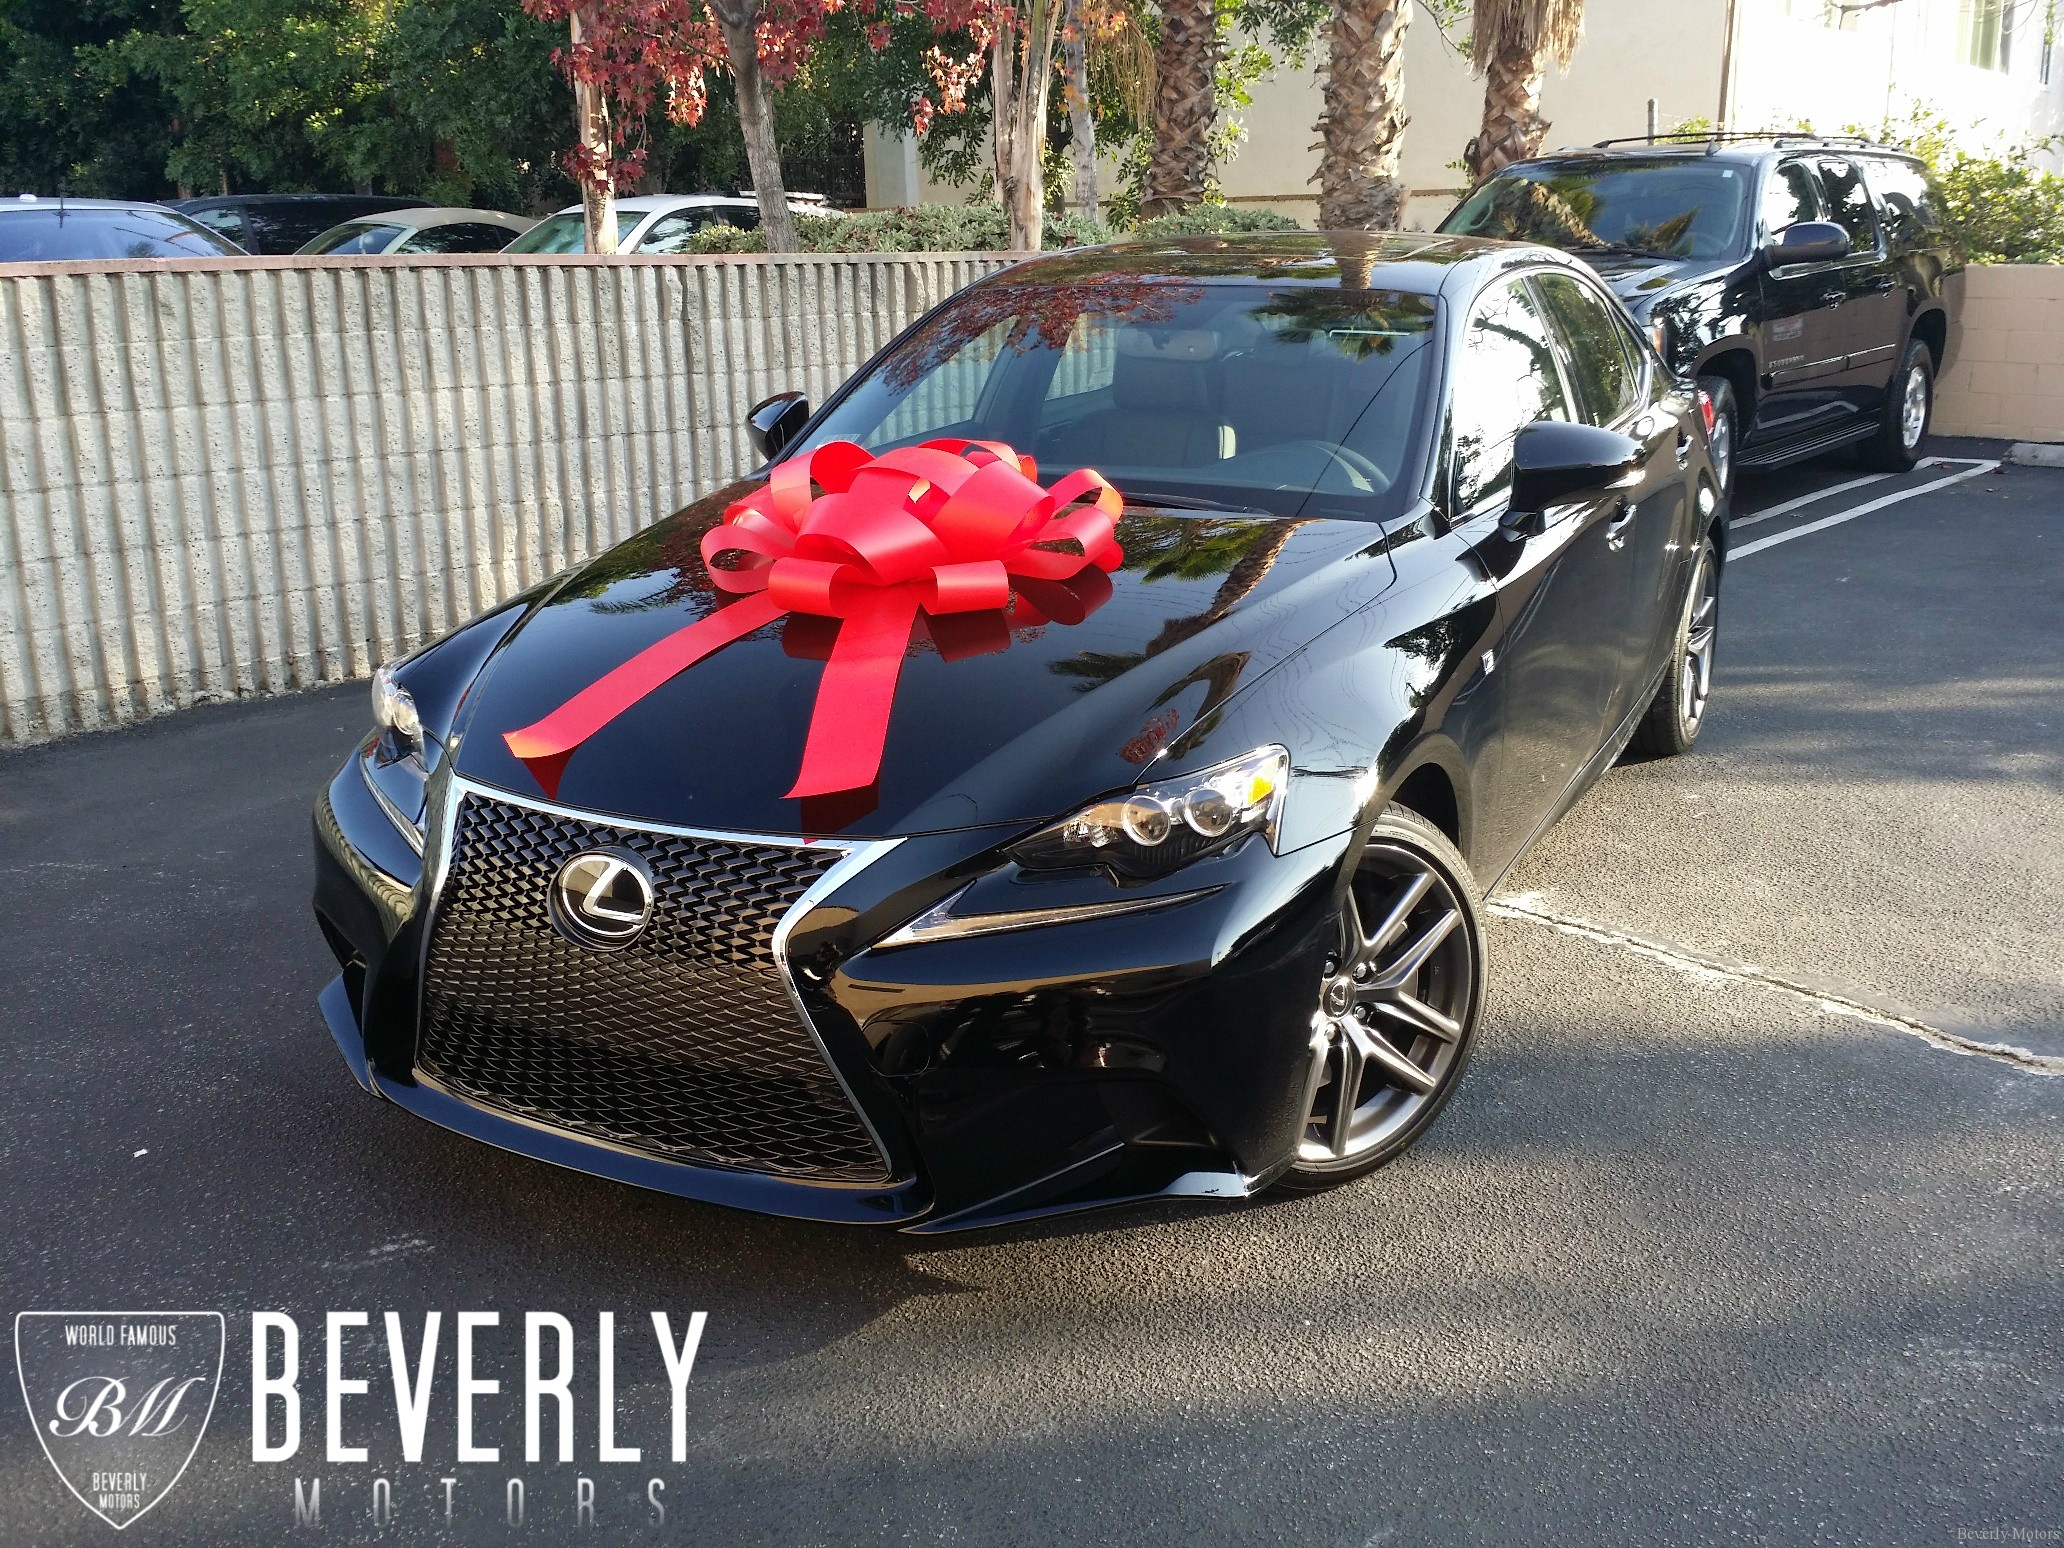 Beverly Motors Inc Glendale Auto Leasing and Sales New Car